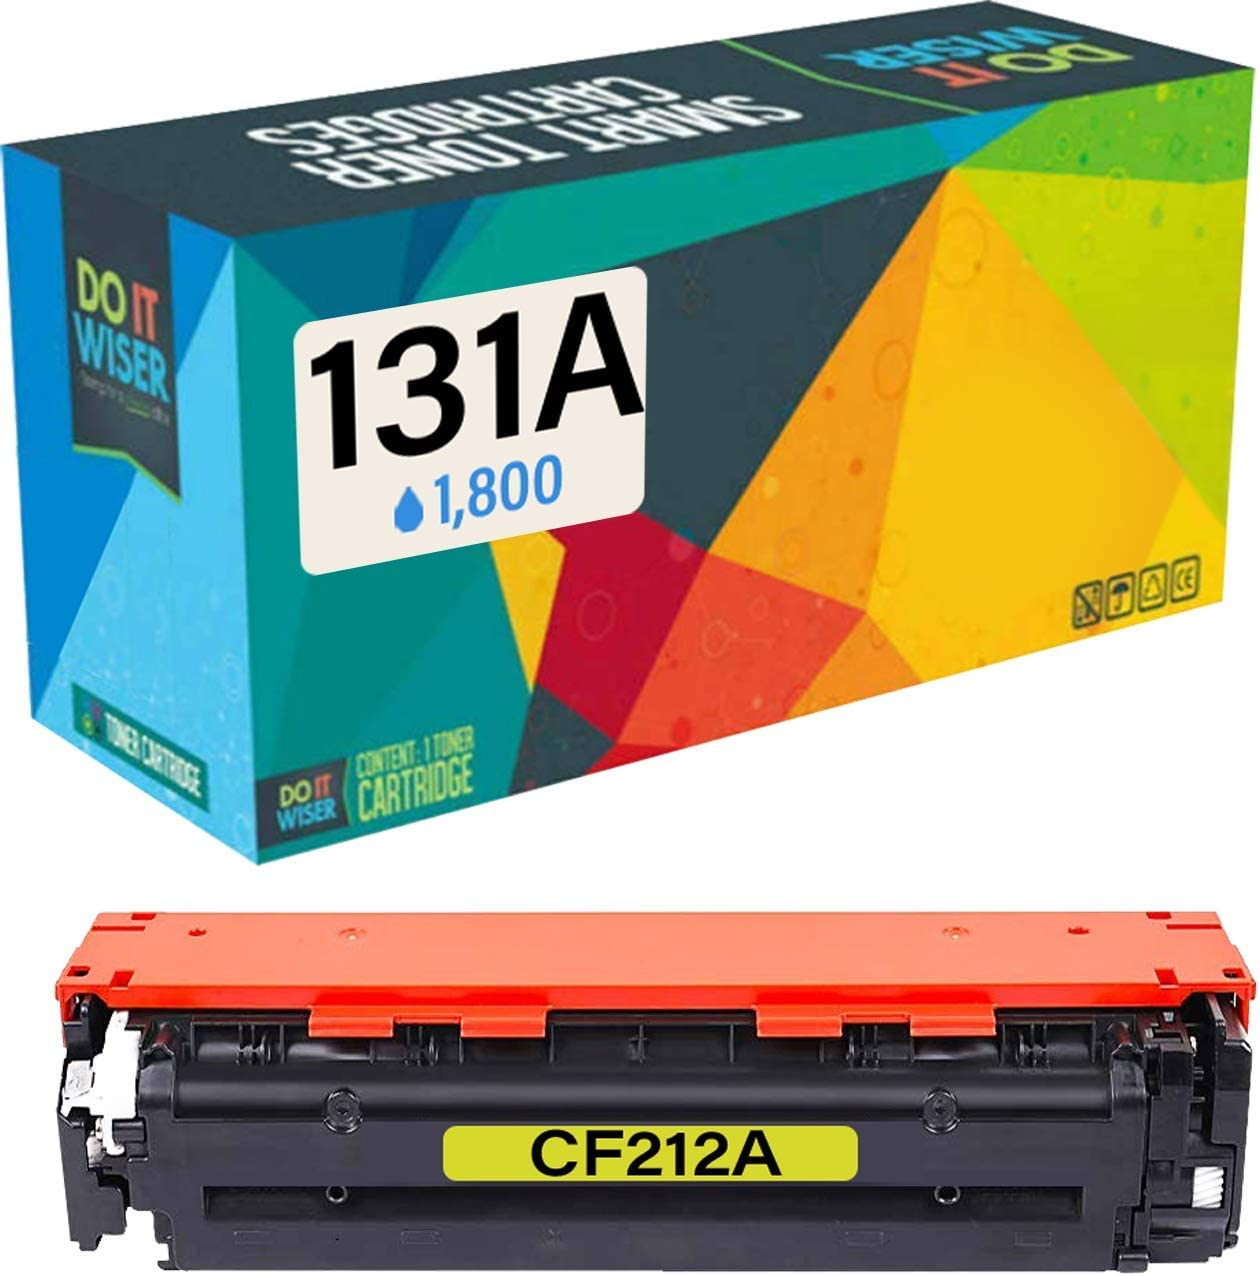 Do it Wiser Compatible Toner Cartridge Replacement for HP 131A CF212A CF212X HP Laserjet Pro 200 Color M251nw MFP M276nw M251n M276nw Canon MF8280Cw 7100CN 7110CW LBP7100C (Yellow)